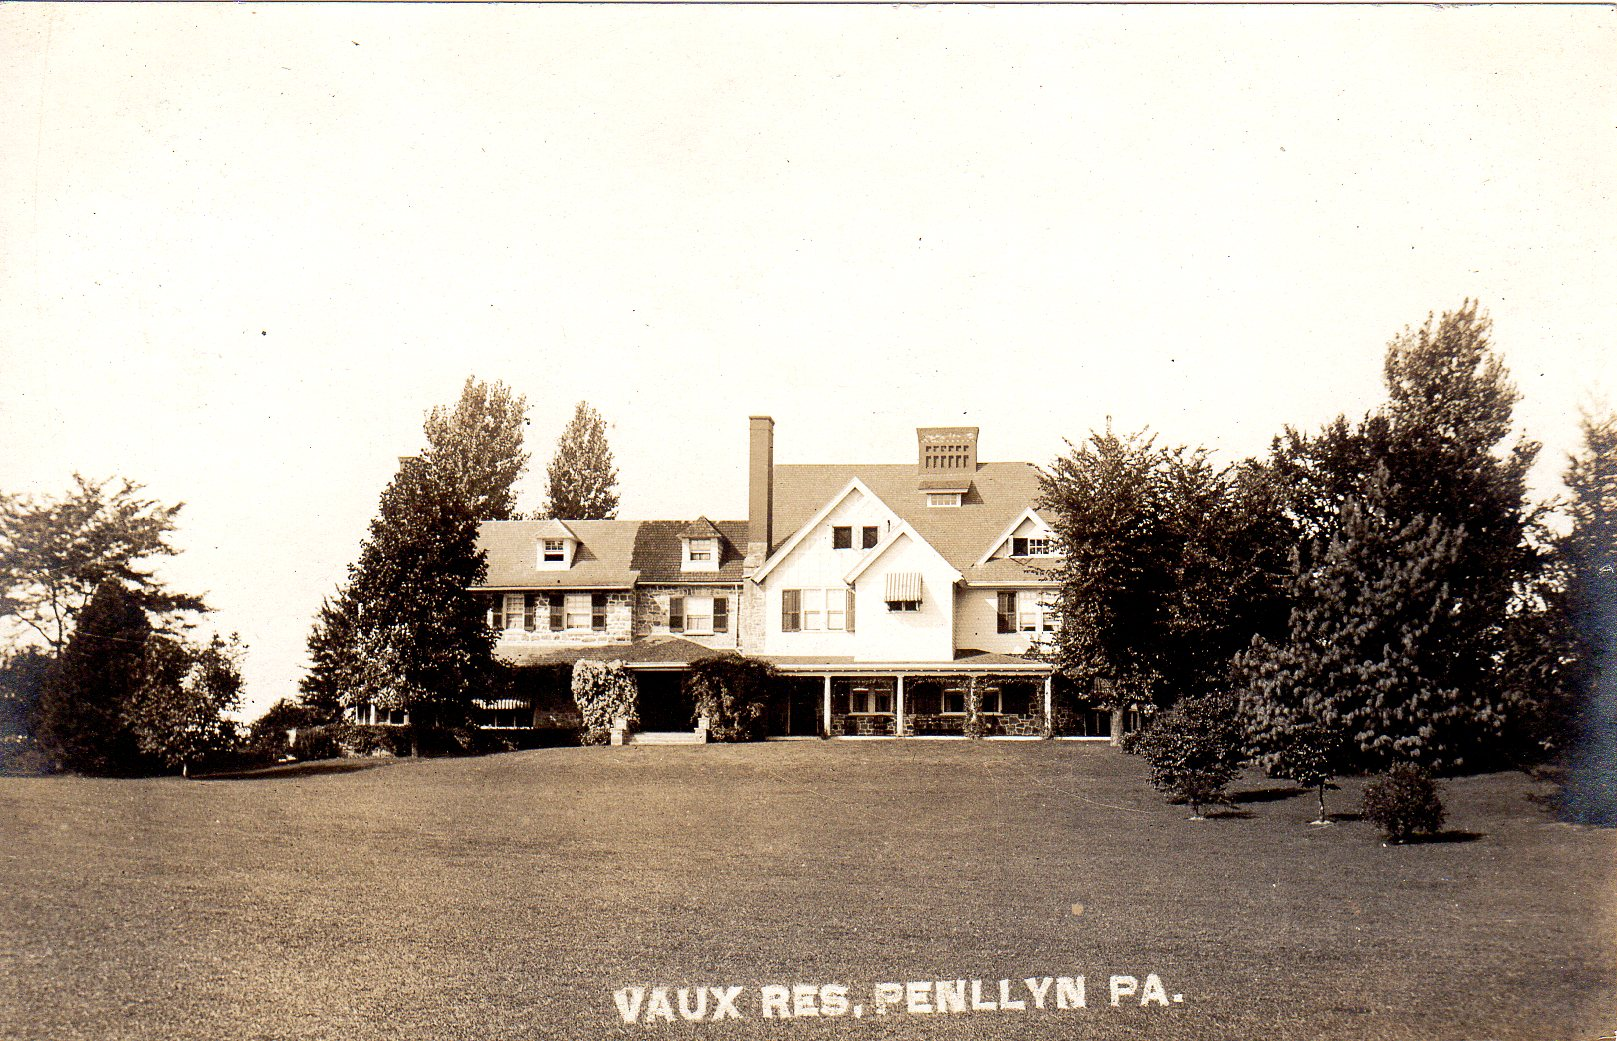 Post Card Collection (E Simon)_2682_68_Vaux Res, Penllyn, Pa